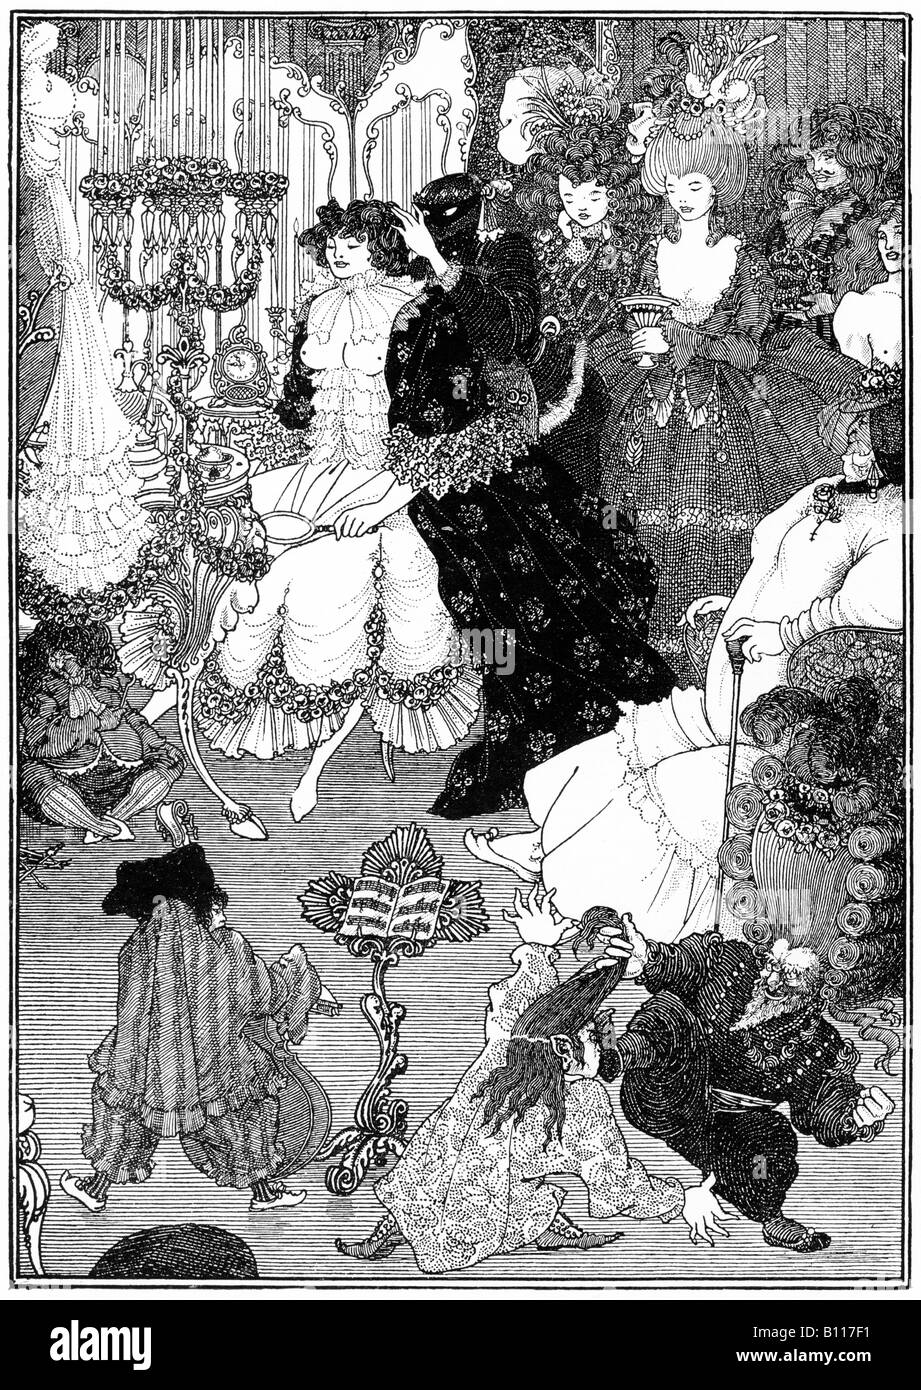 The Toilet Of Helen The Savoy 1895 illustration by Aubrey Beardsley of the heroine of his story Under The Hill - Stock Image